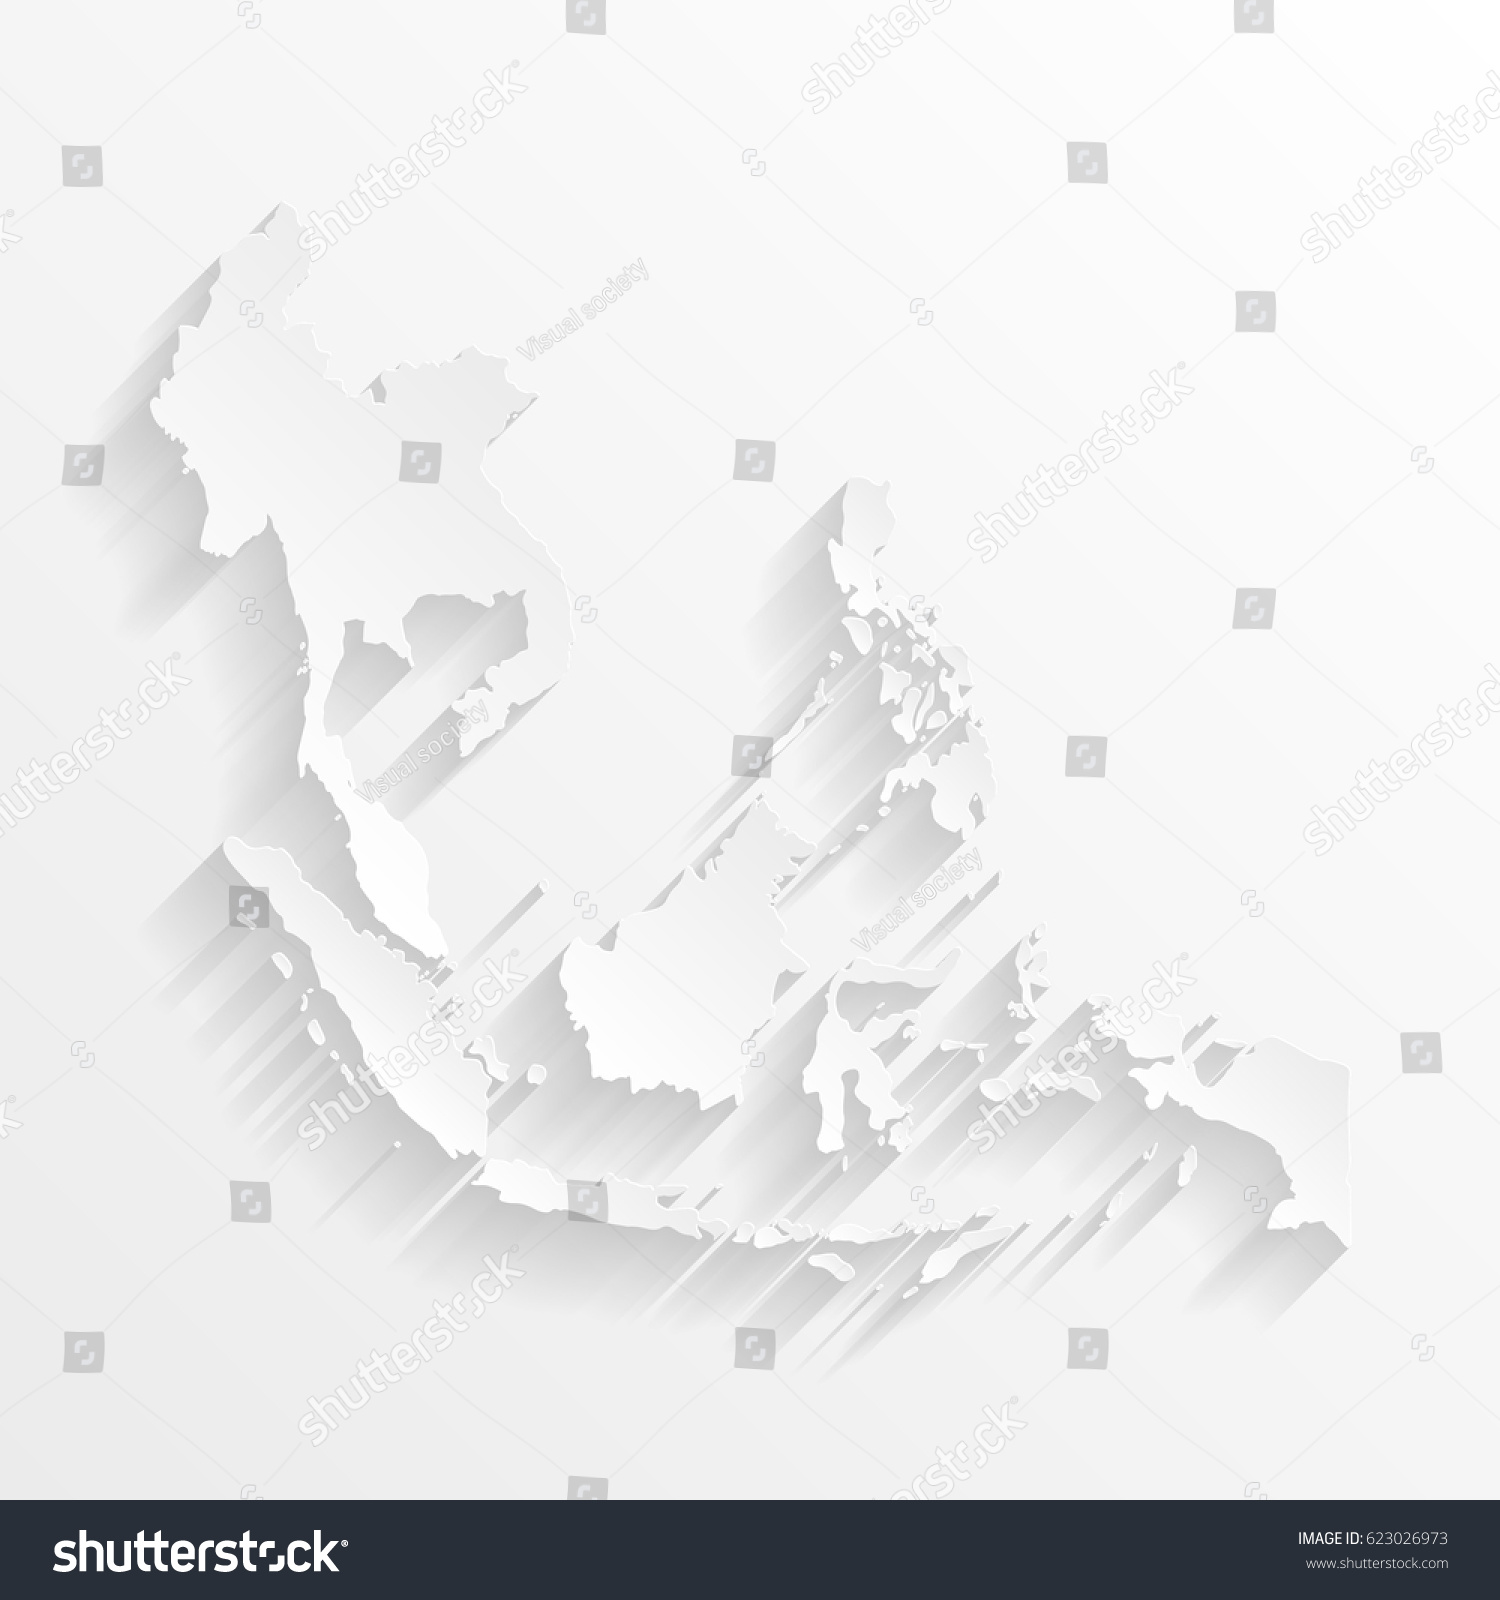 Southeast asia map shadow cut paper stock photo photo vector southeast asia map with shadow cut paper isolated on a white background vector illustration publicscrutiny Choice Image